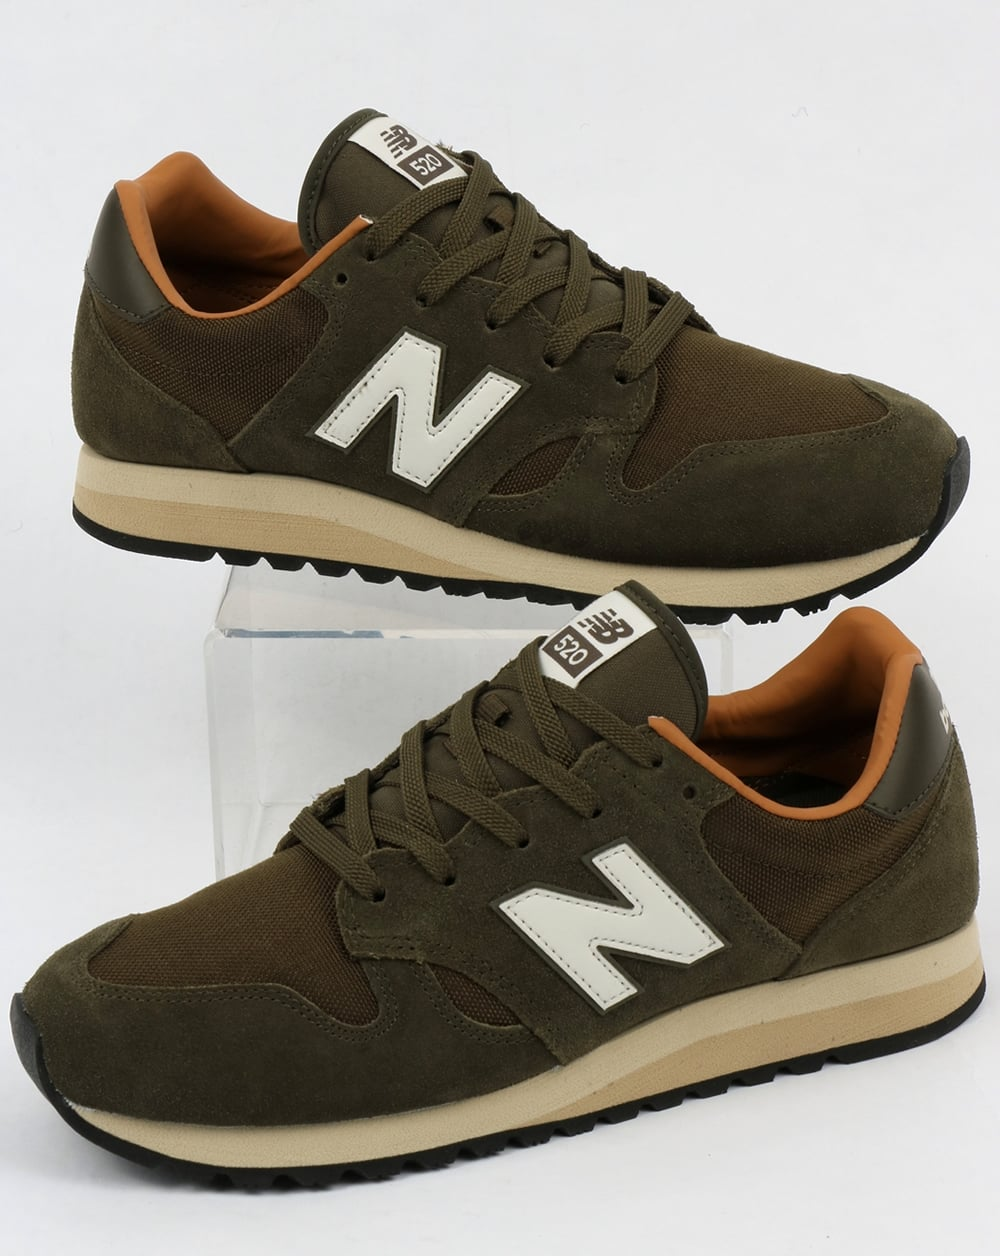 new balance 520 trainers military dark brown sugar shoes. Black Bedroom Furniture Sets. Home Design Ideas